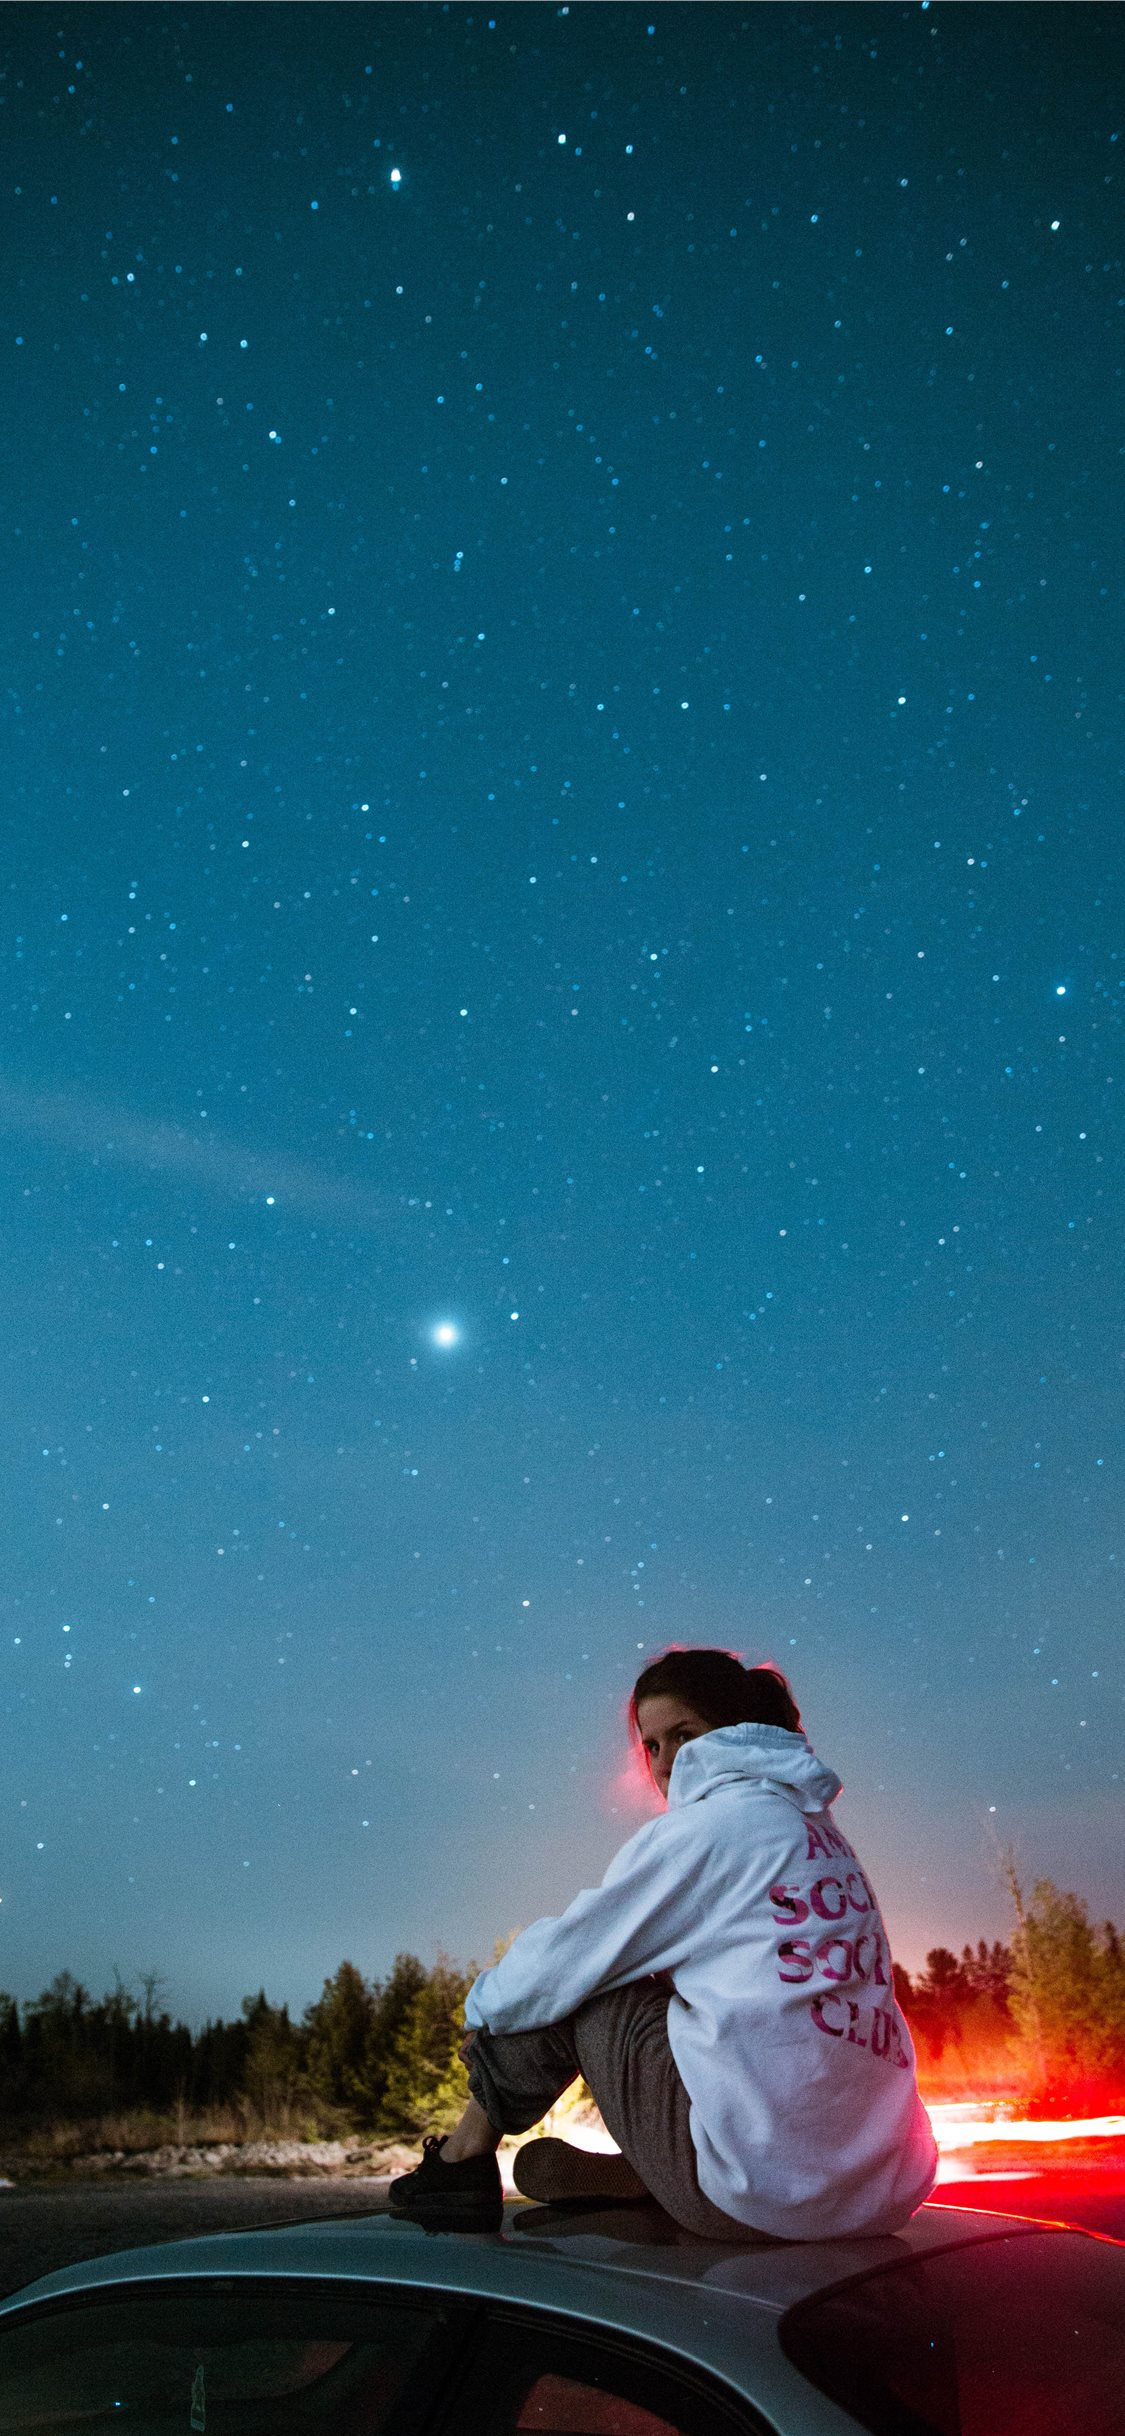 Stargazing Iphone X Wallpapers Free Download